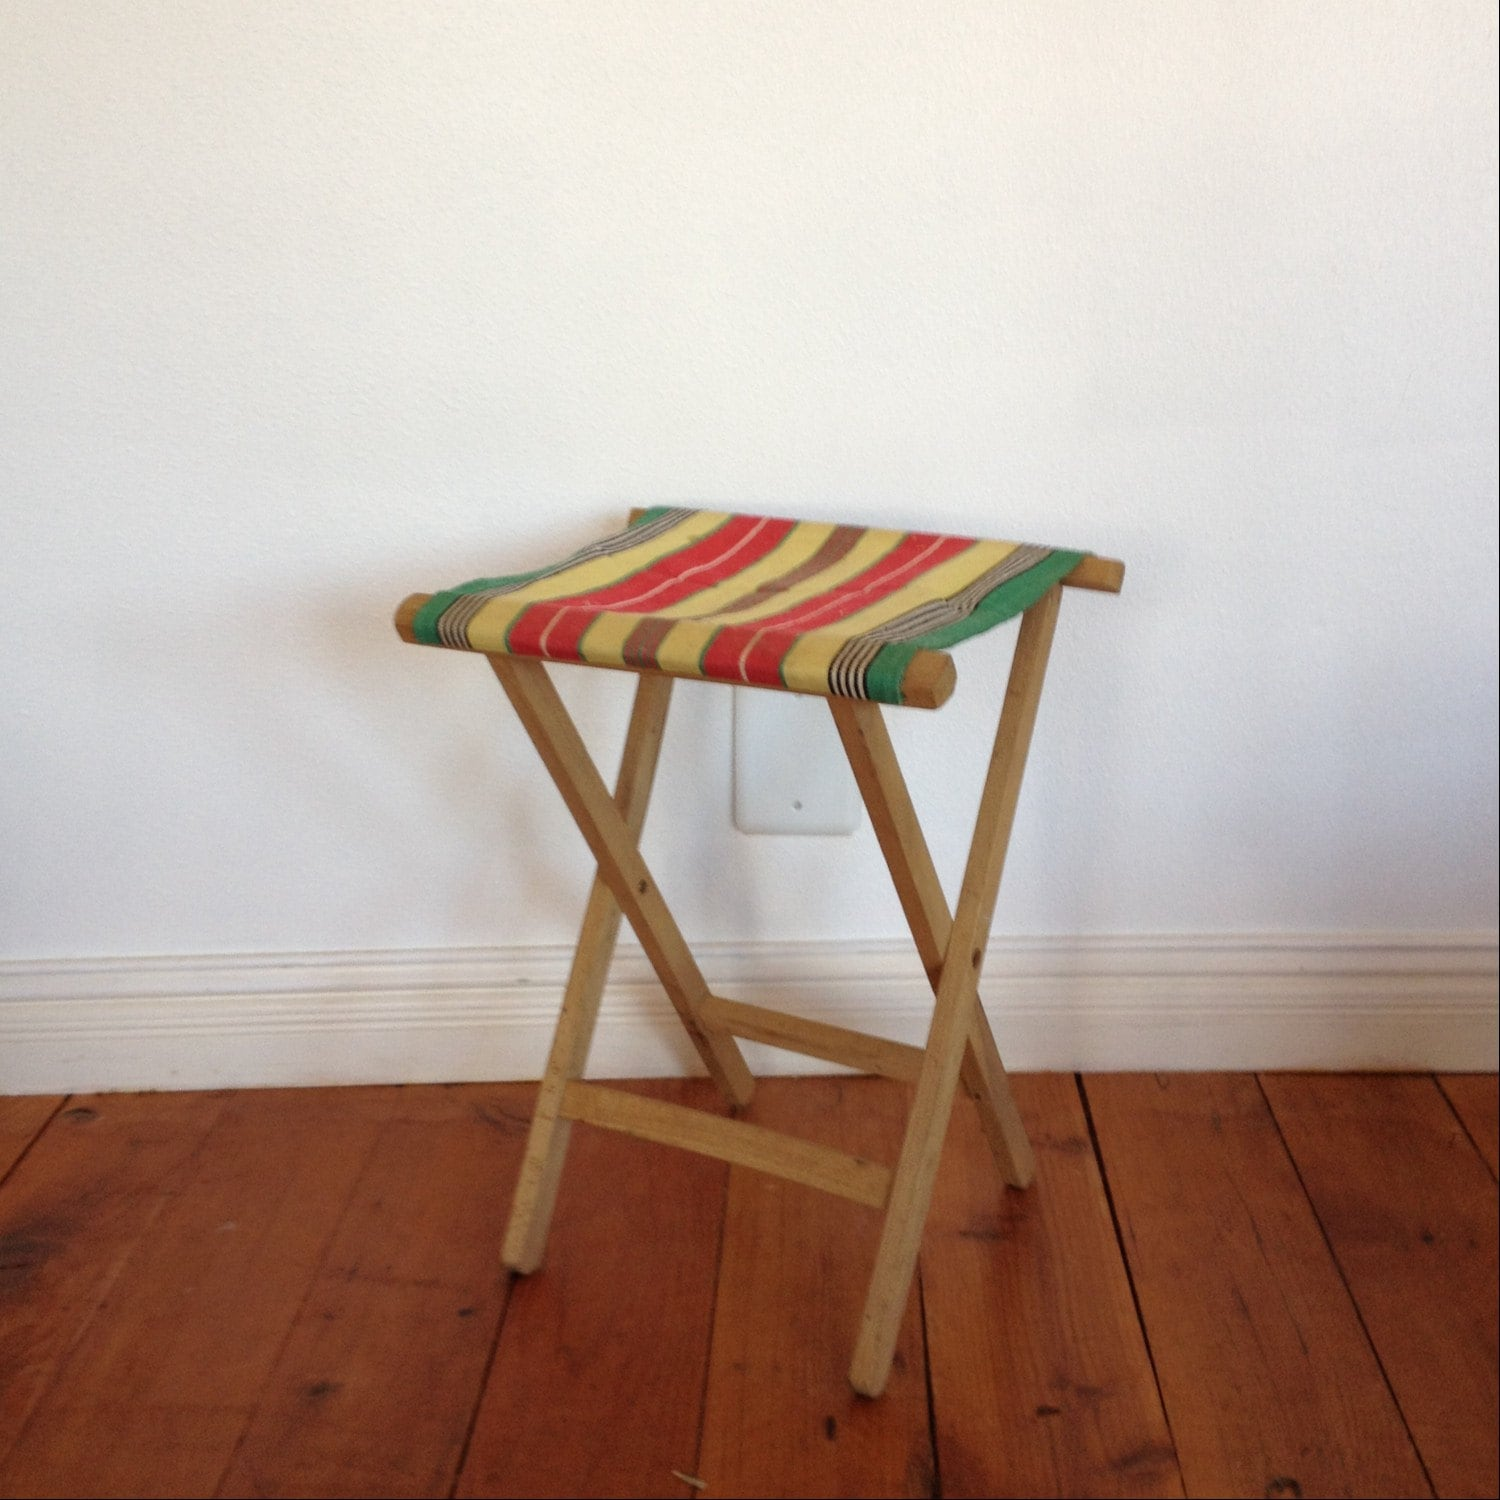 Superb img of Vintage Folding Camp Stool : Wood Stool Striped by solsticehome with #462012 color and 1500x1500 pixels